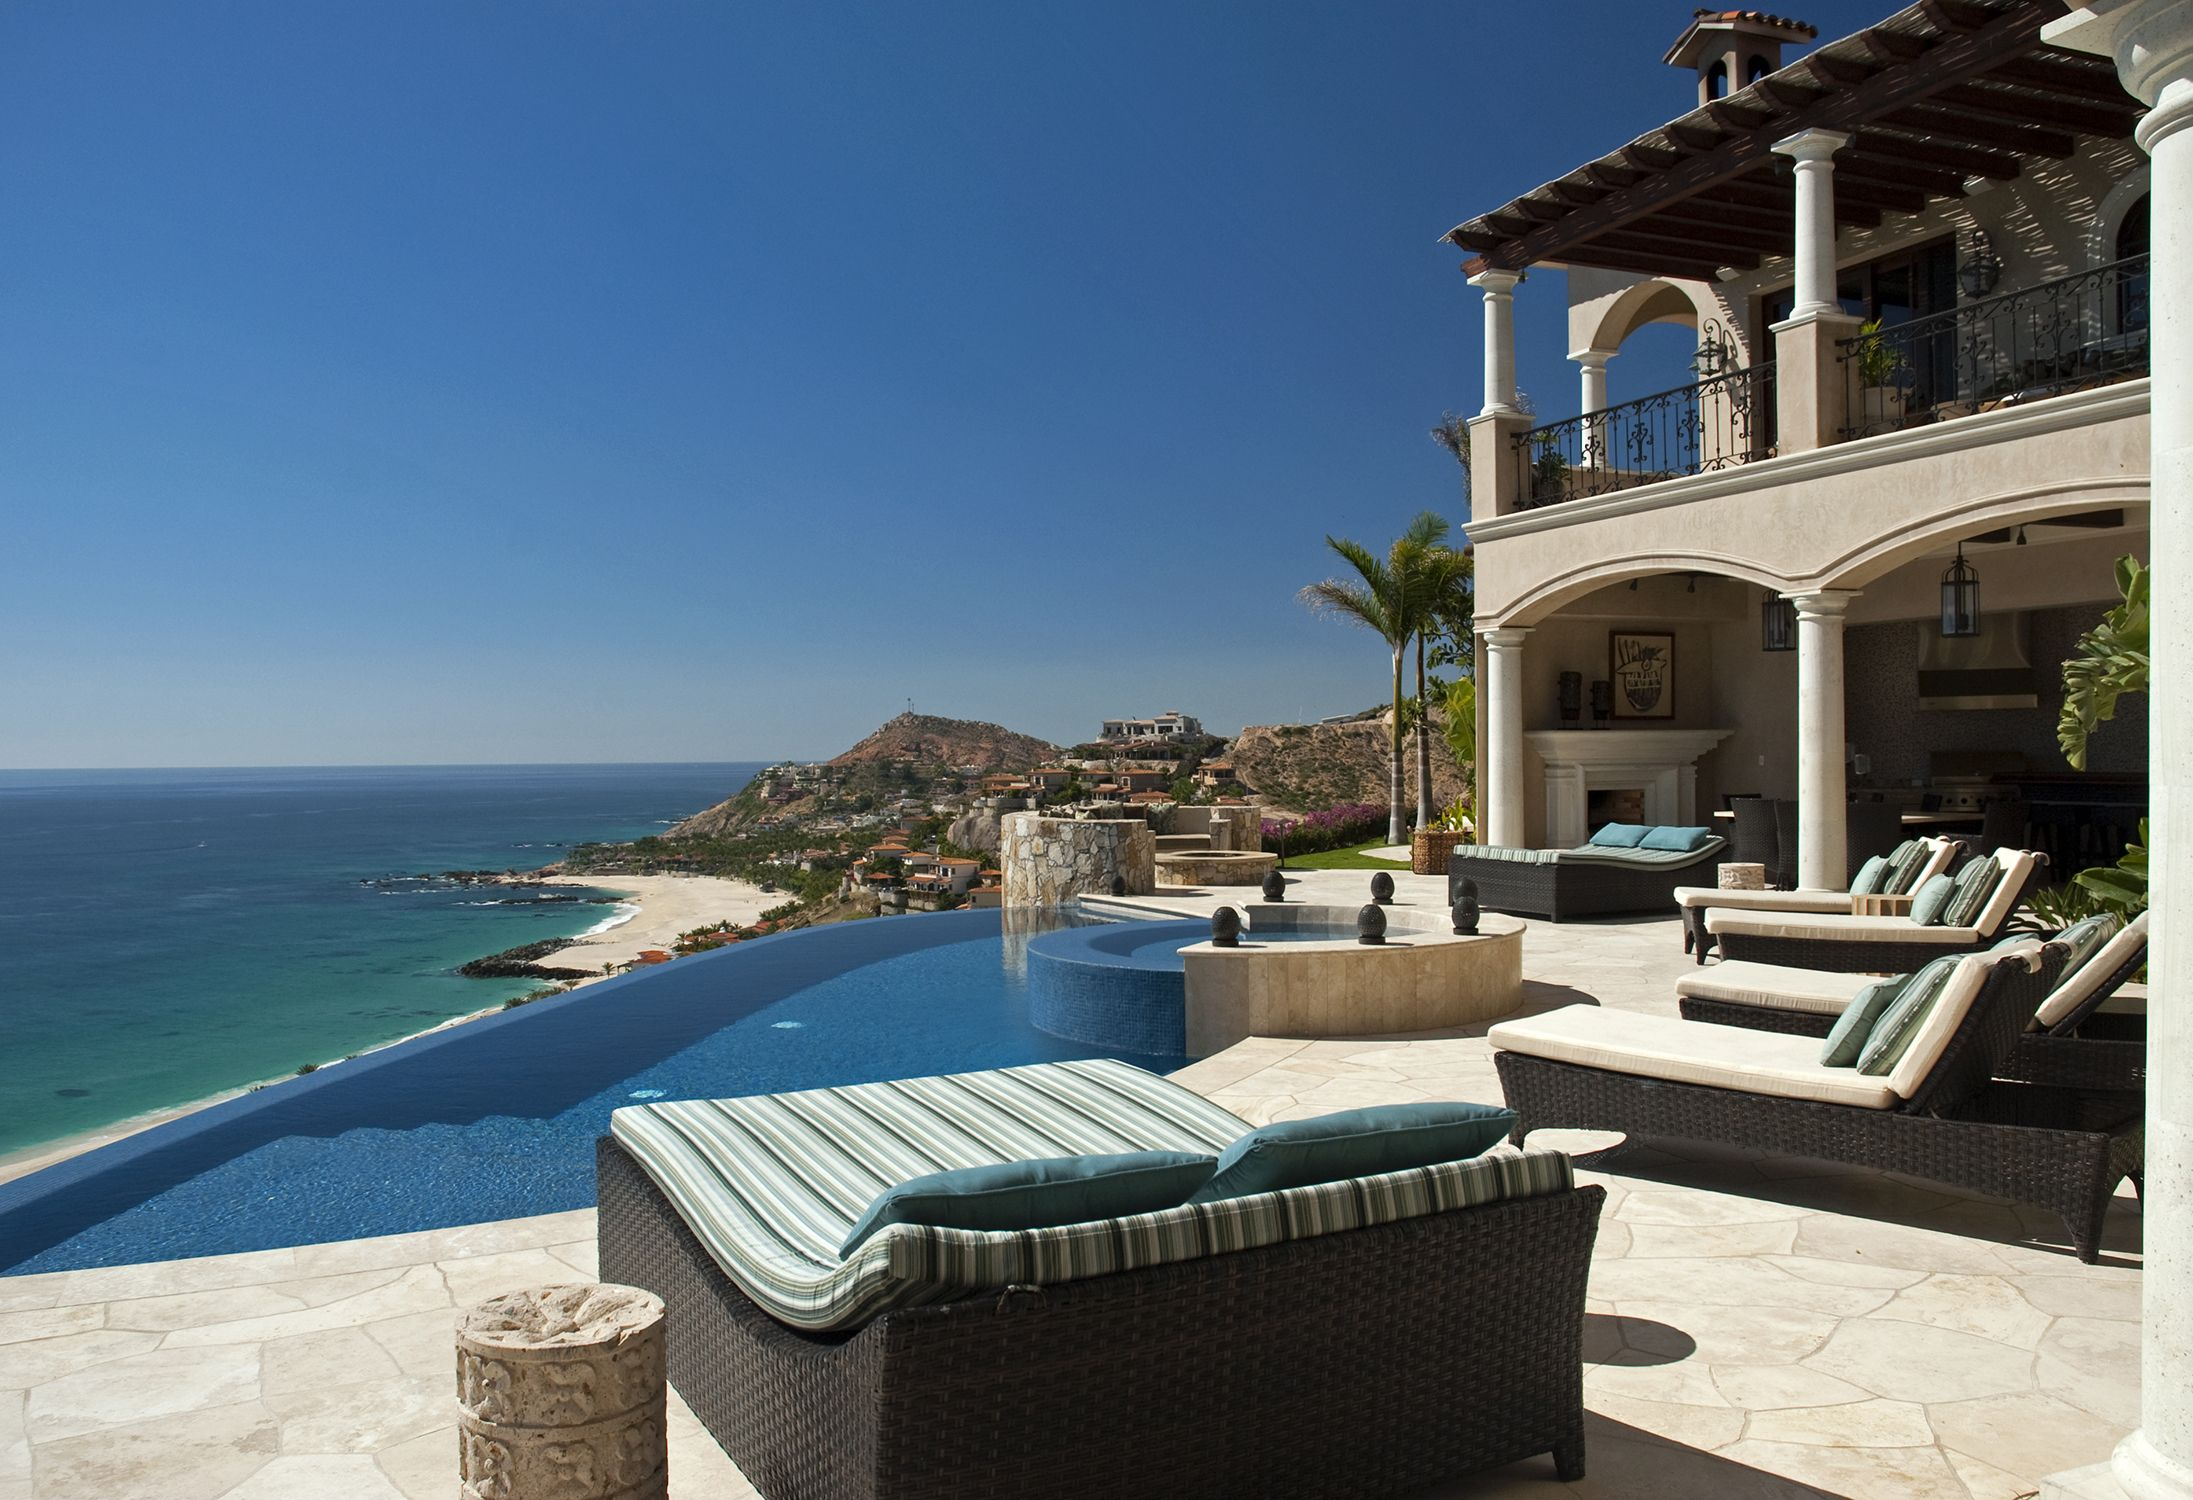 Lifestyle In Cabo Info Lifestyleincabo Com Michael Baldwin Properties Los Cabos Baja California Sur Mexi Villa Baja California Mexico Luxury Real Estate